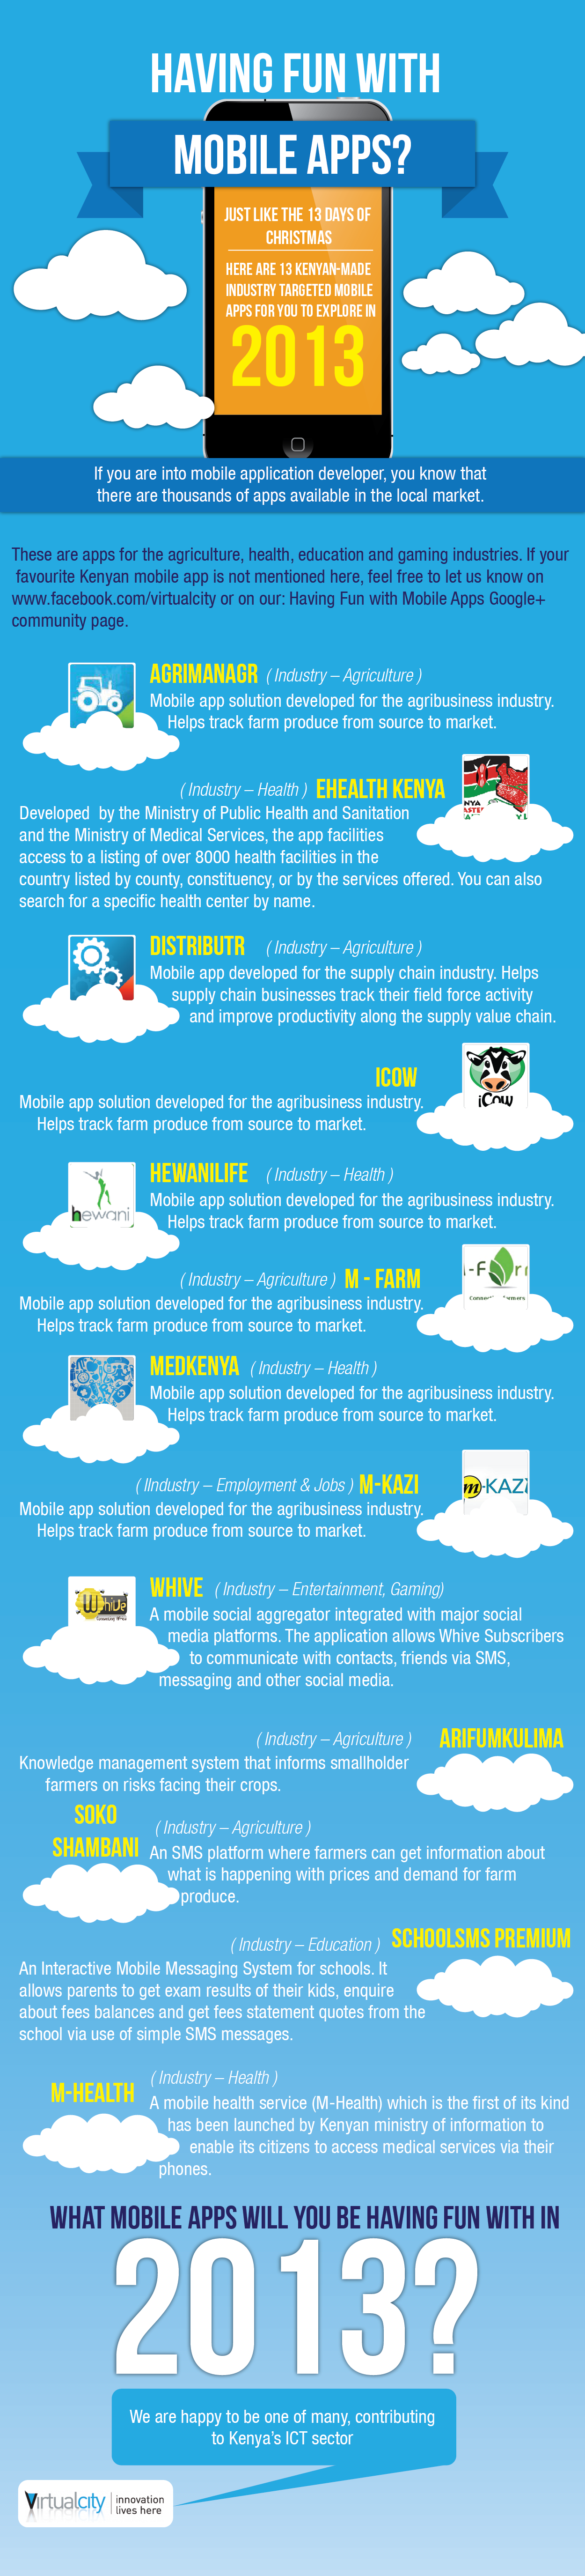 Let us know what you think of our list of the cool apps that Android phone  users in Kenya have been having fun with in 2012.  We narrowed it down to 13 (just to keep our infographic at a realistic length, and 13 is a cool number too:-) ). If we left  out any other apps, feel free to let us know in our comments section or on our Twitter and Facebook pages.